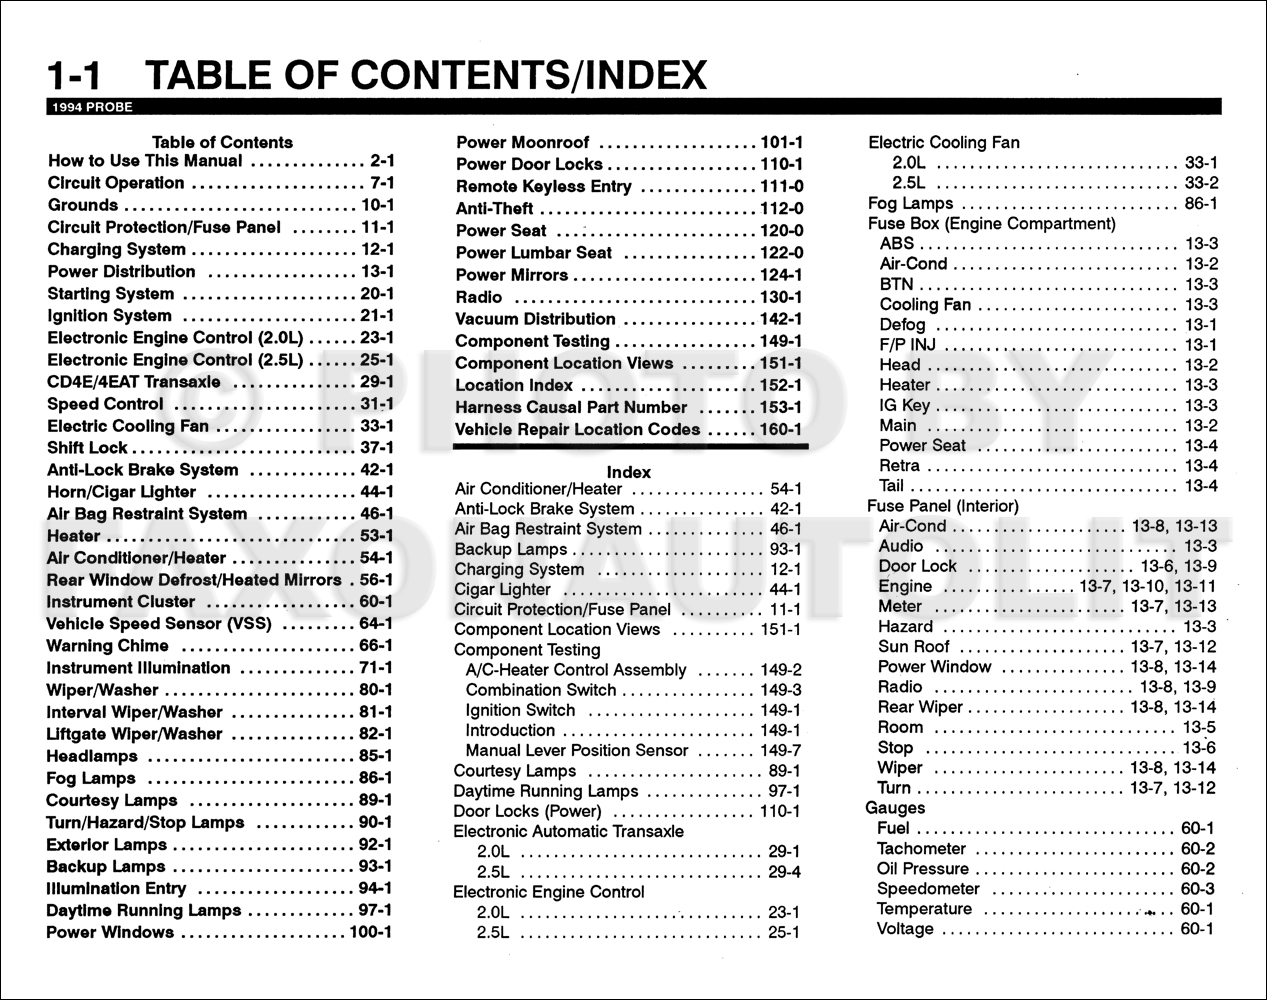 1994 Ford Probe Electrical & Vacuum Troubleshooting Manual Original · Table  of Contents Page 1